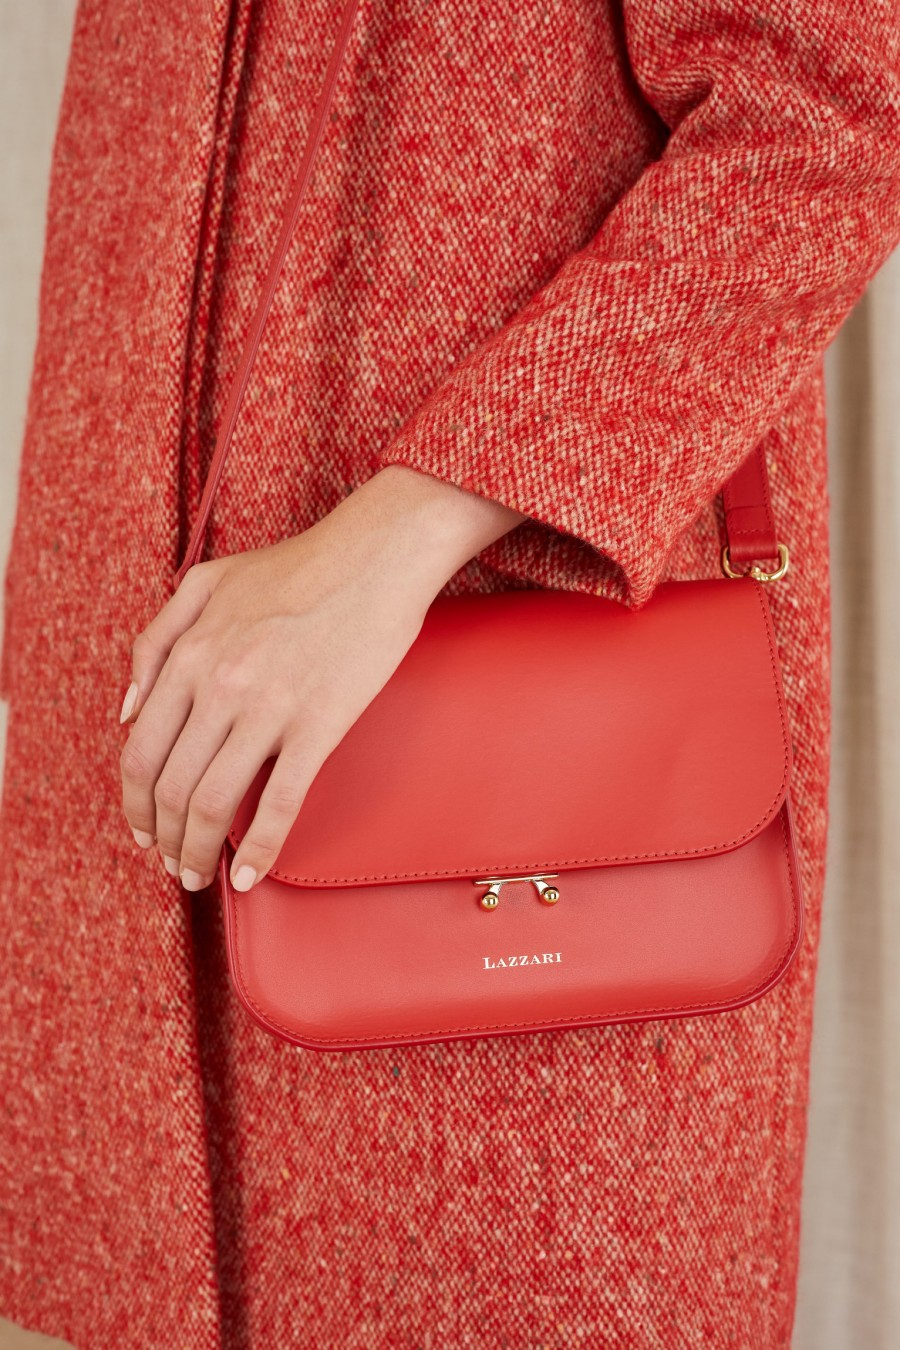 simple red bag